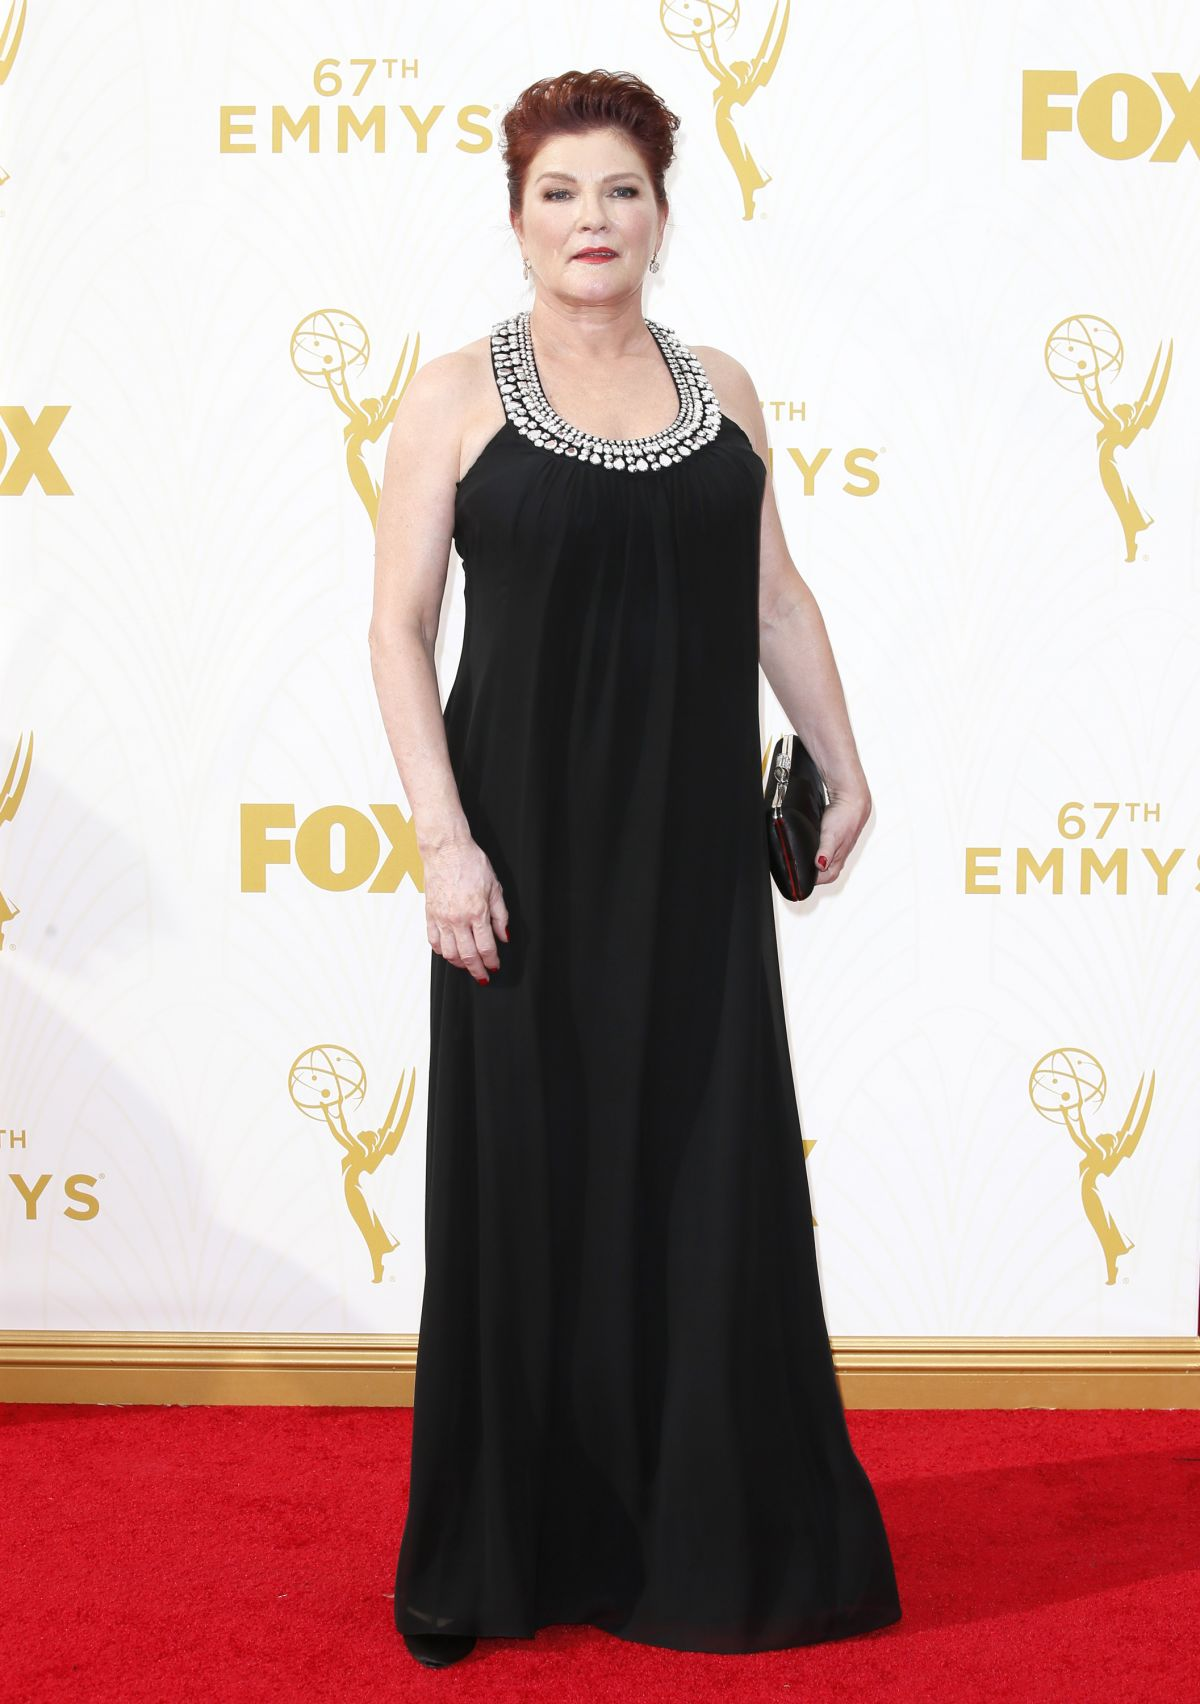 KATE MULGREW at 2015 Emmy Awards in Los Angeles 09/20/2015